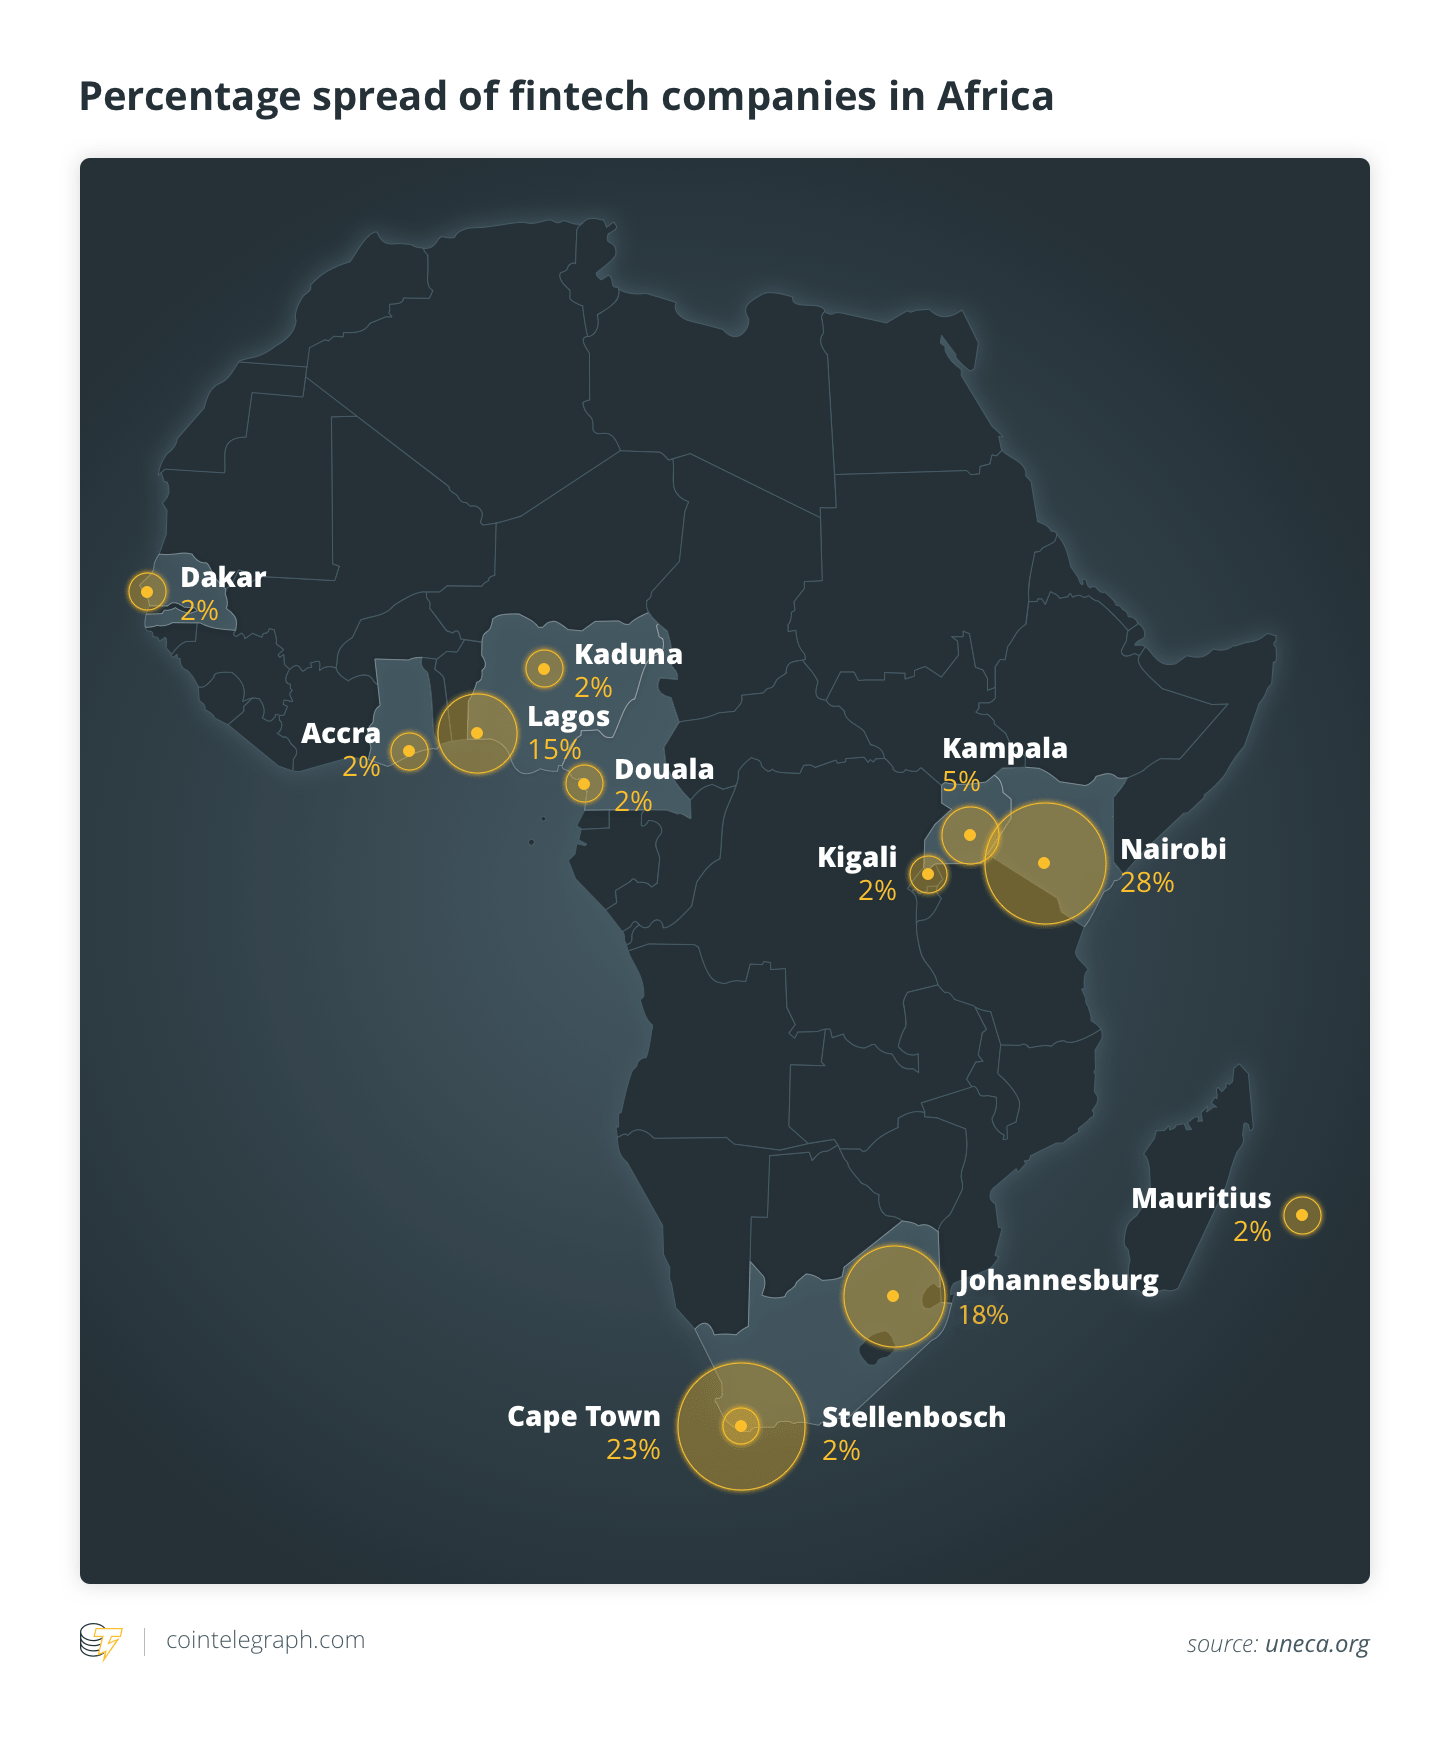 Percentage spread of fintech companies in Africa